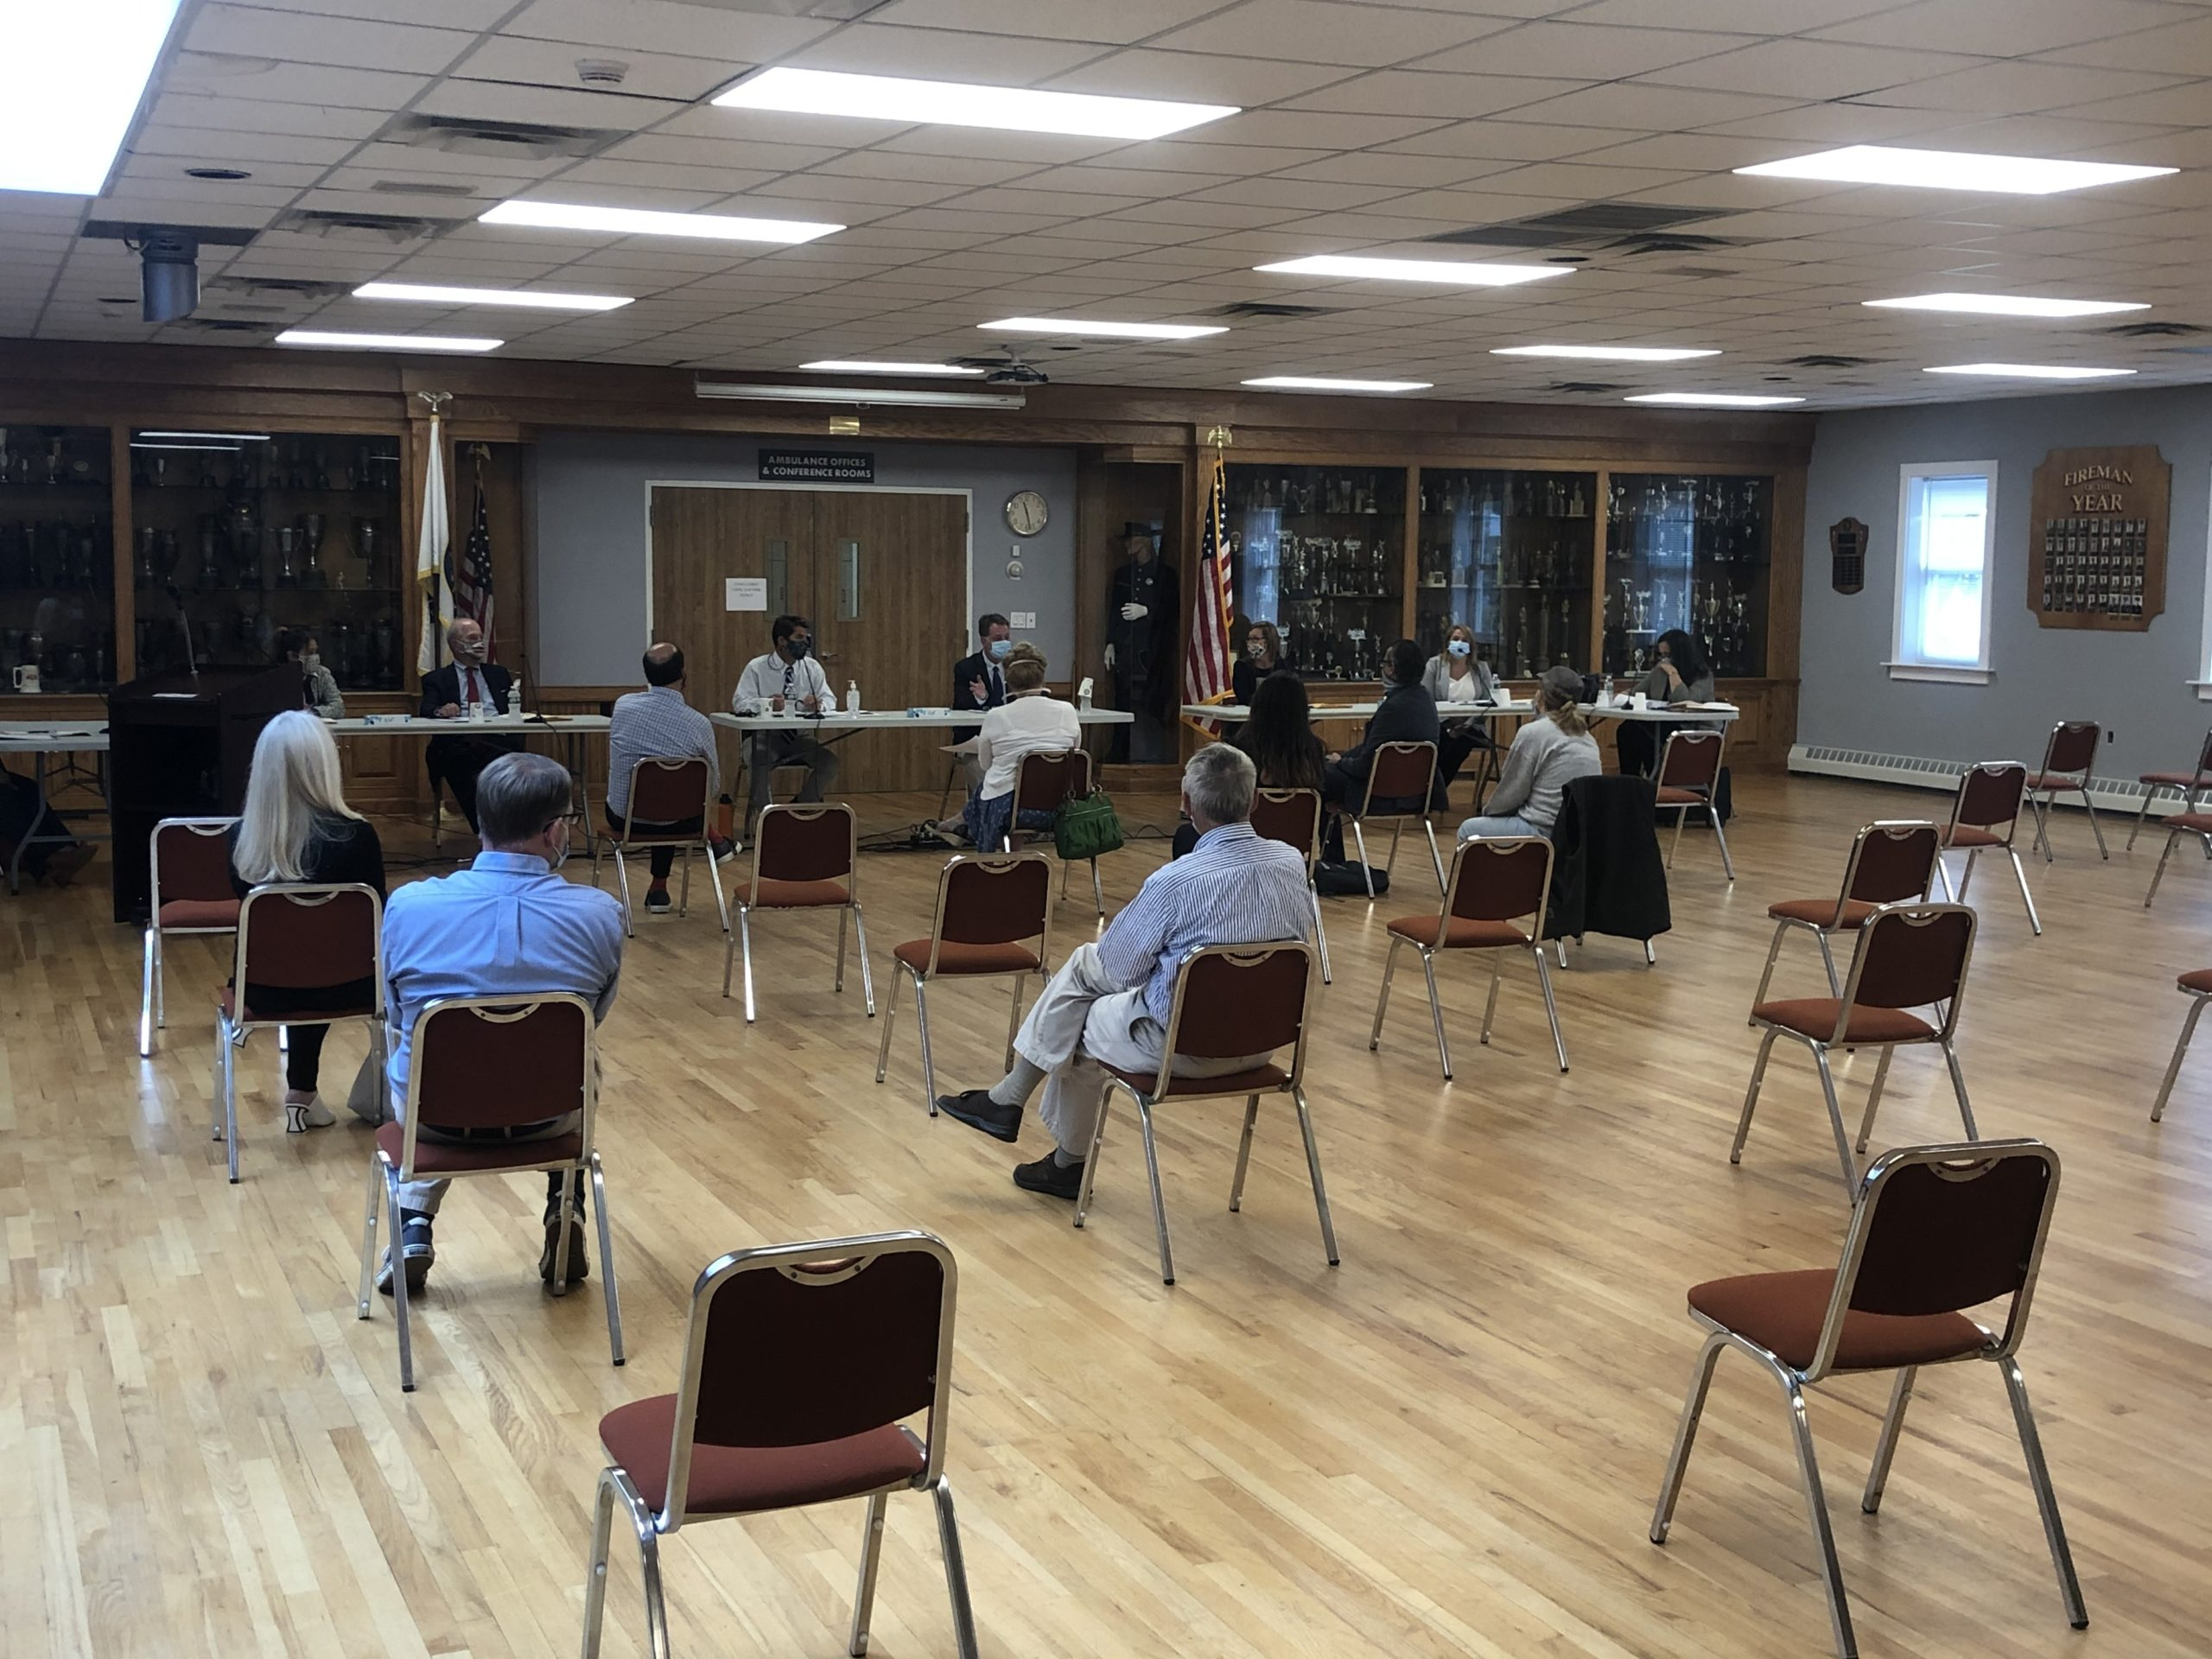 Social distancing precautions were in place at the first in-person government meeting in East Hampton since March.